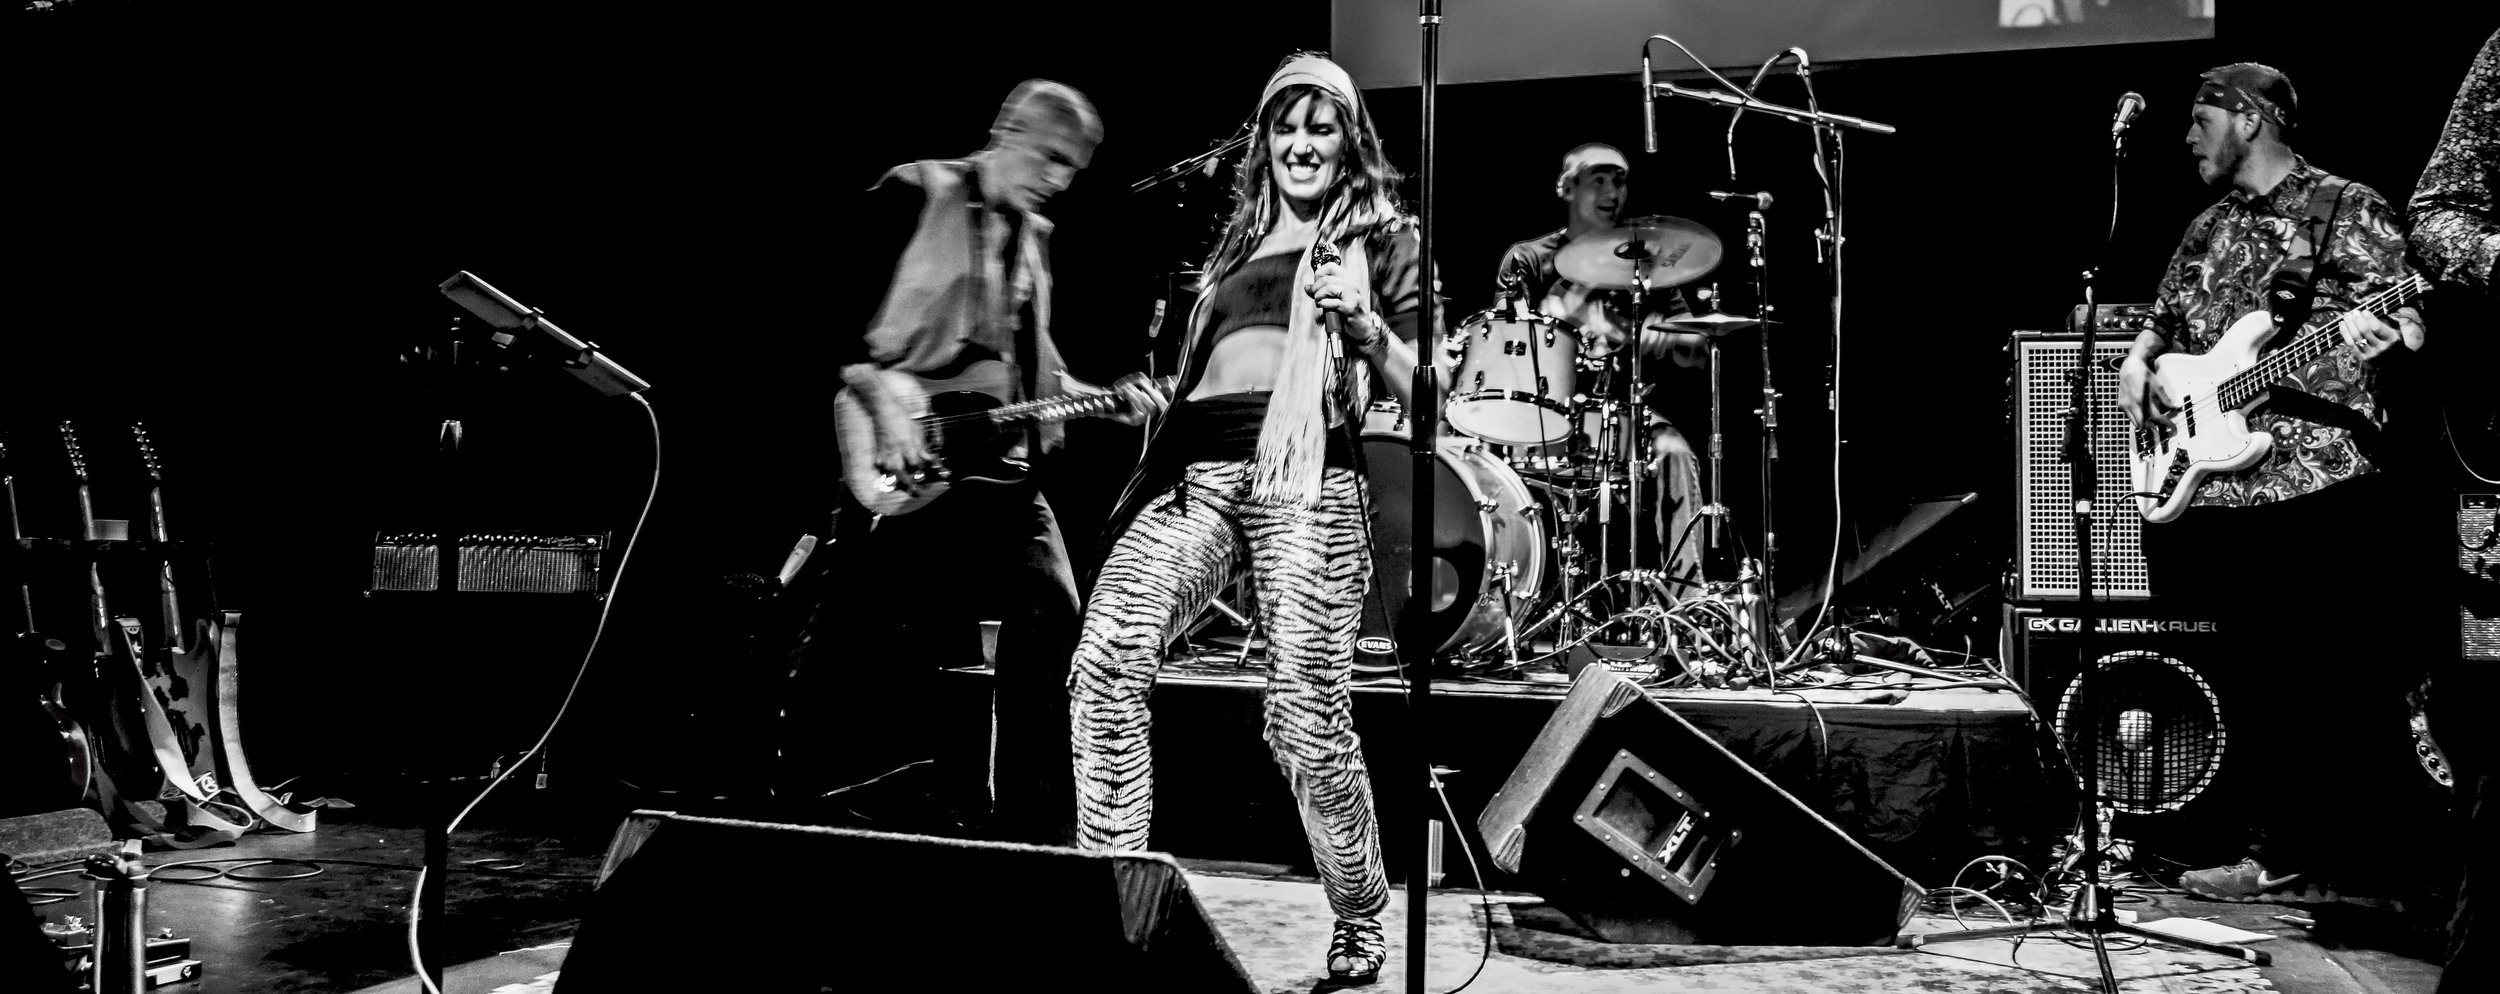 Inger singing Zeppelin with ZEPDRIX. The Rogue Theater Photo by Mark Arinsberg